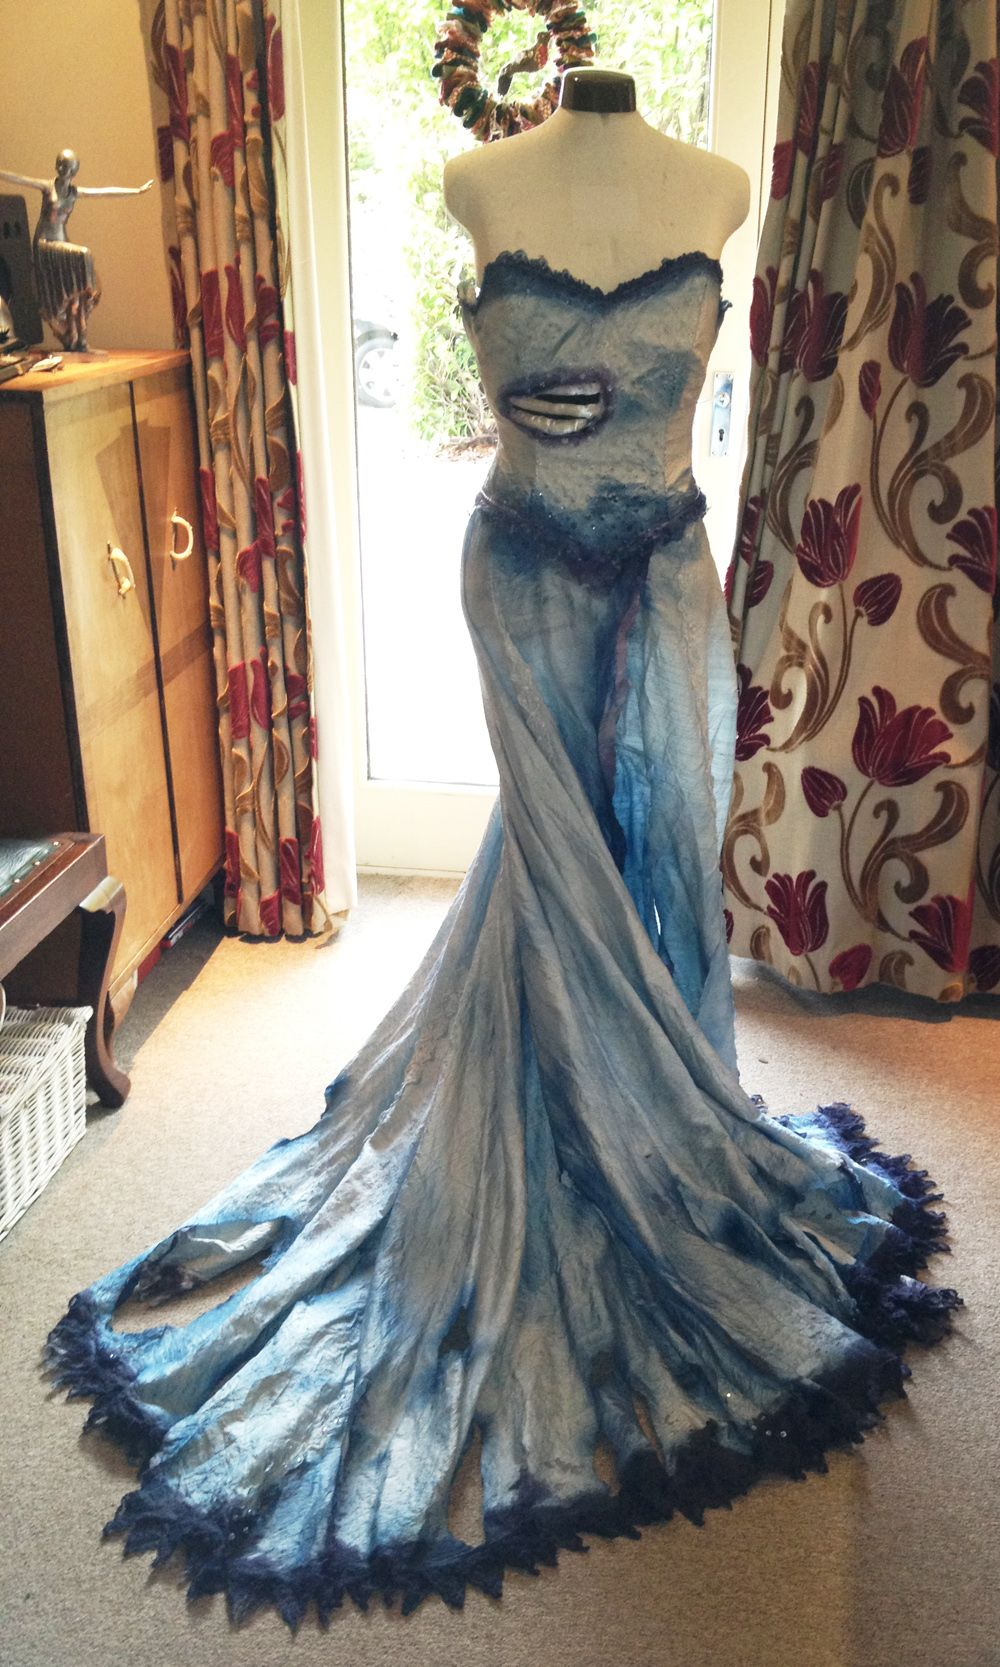 wedding dress halloween costume handmade corpse bride costume front still want this idea for save the date photos Need find someone help me make this dress